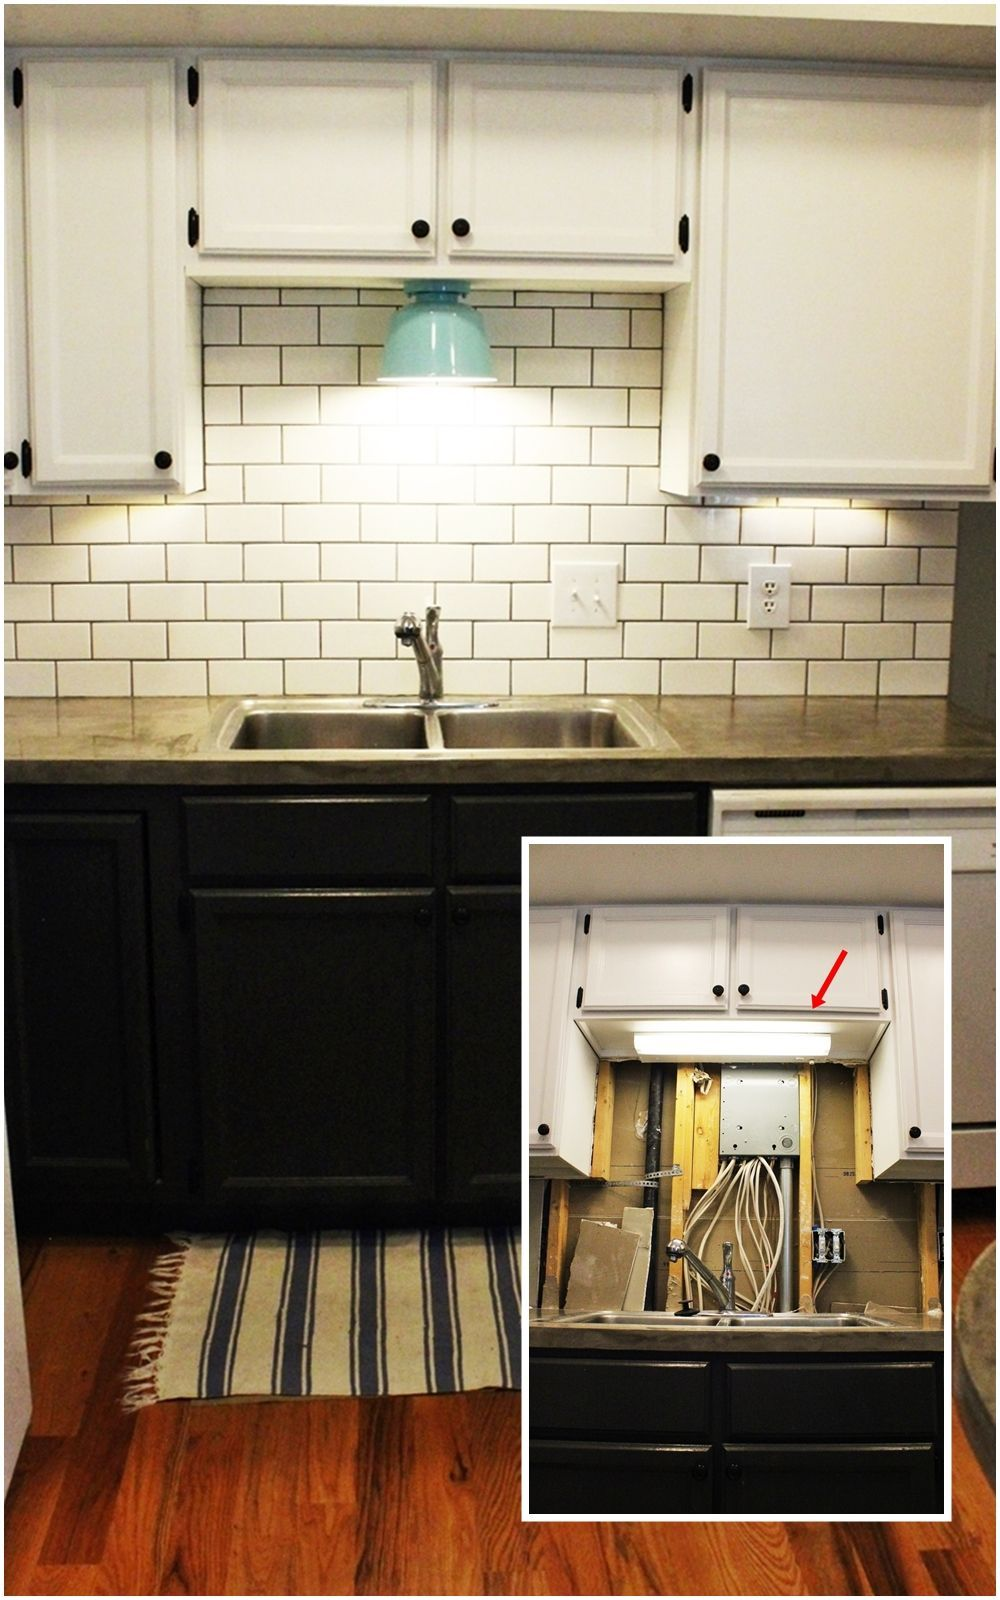 Under Cabinet Lighting In Kitchen Diy Kitchen Lighting Upgrade Led Under Cabinet Lights Above The